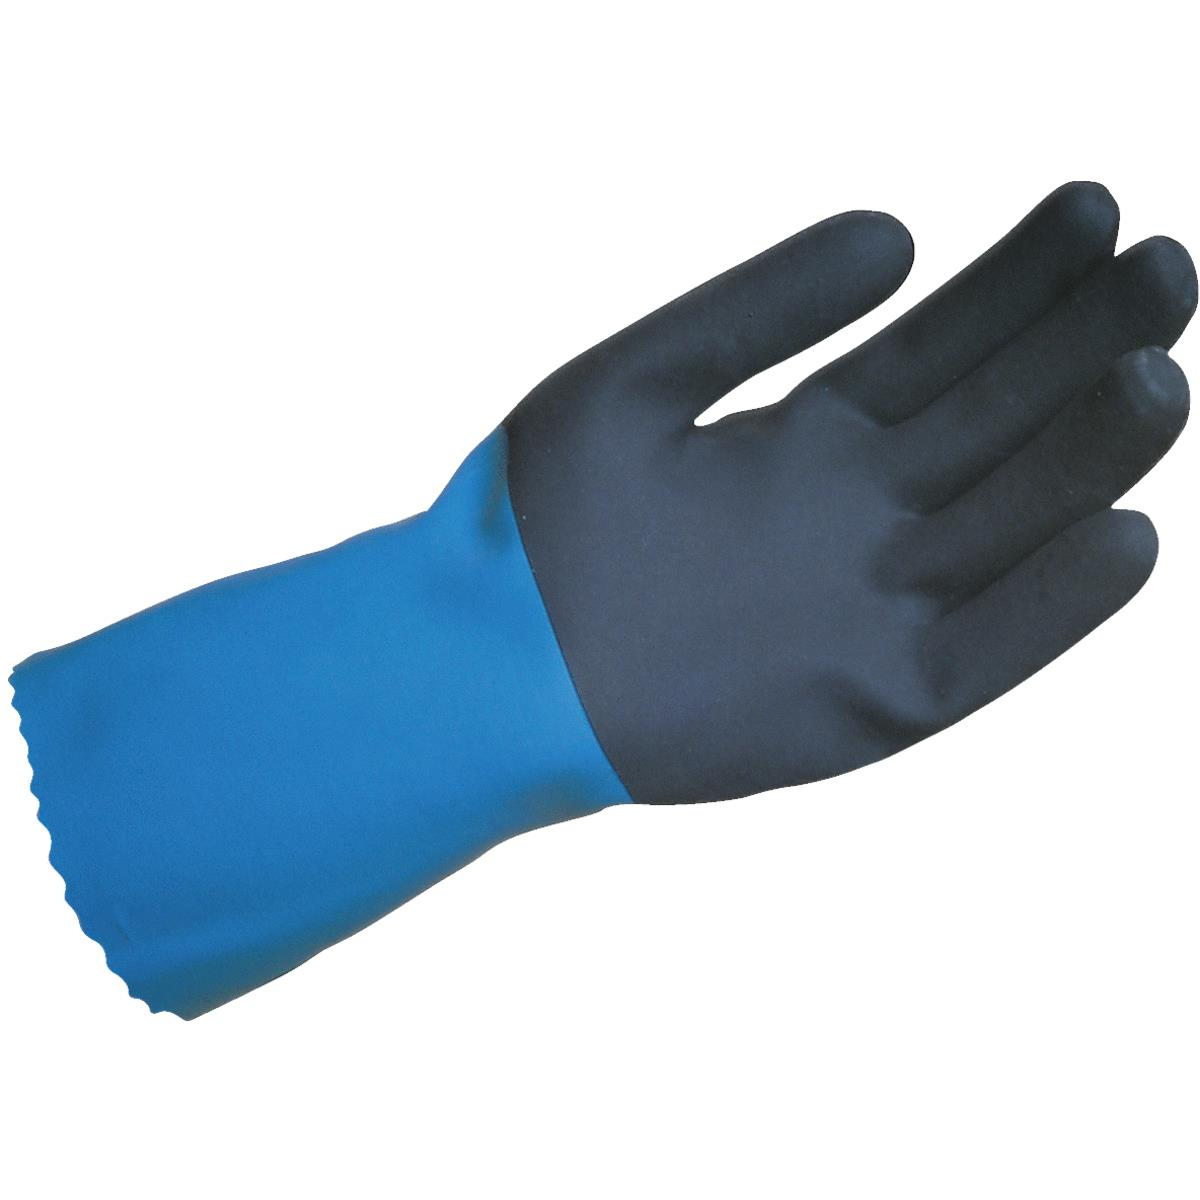 Spontex Everyday Protect Rubber Gloves Large